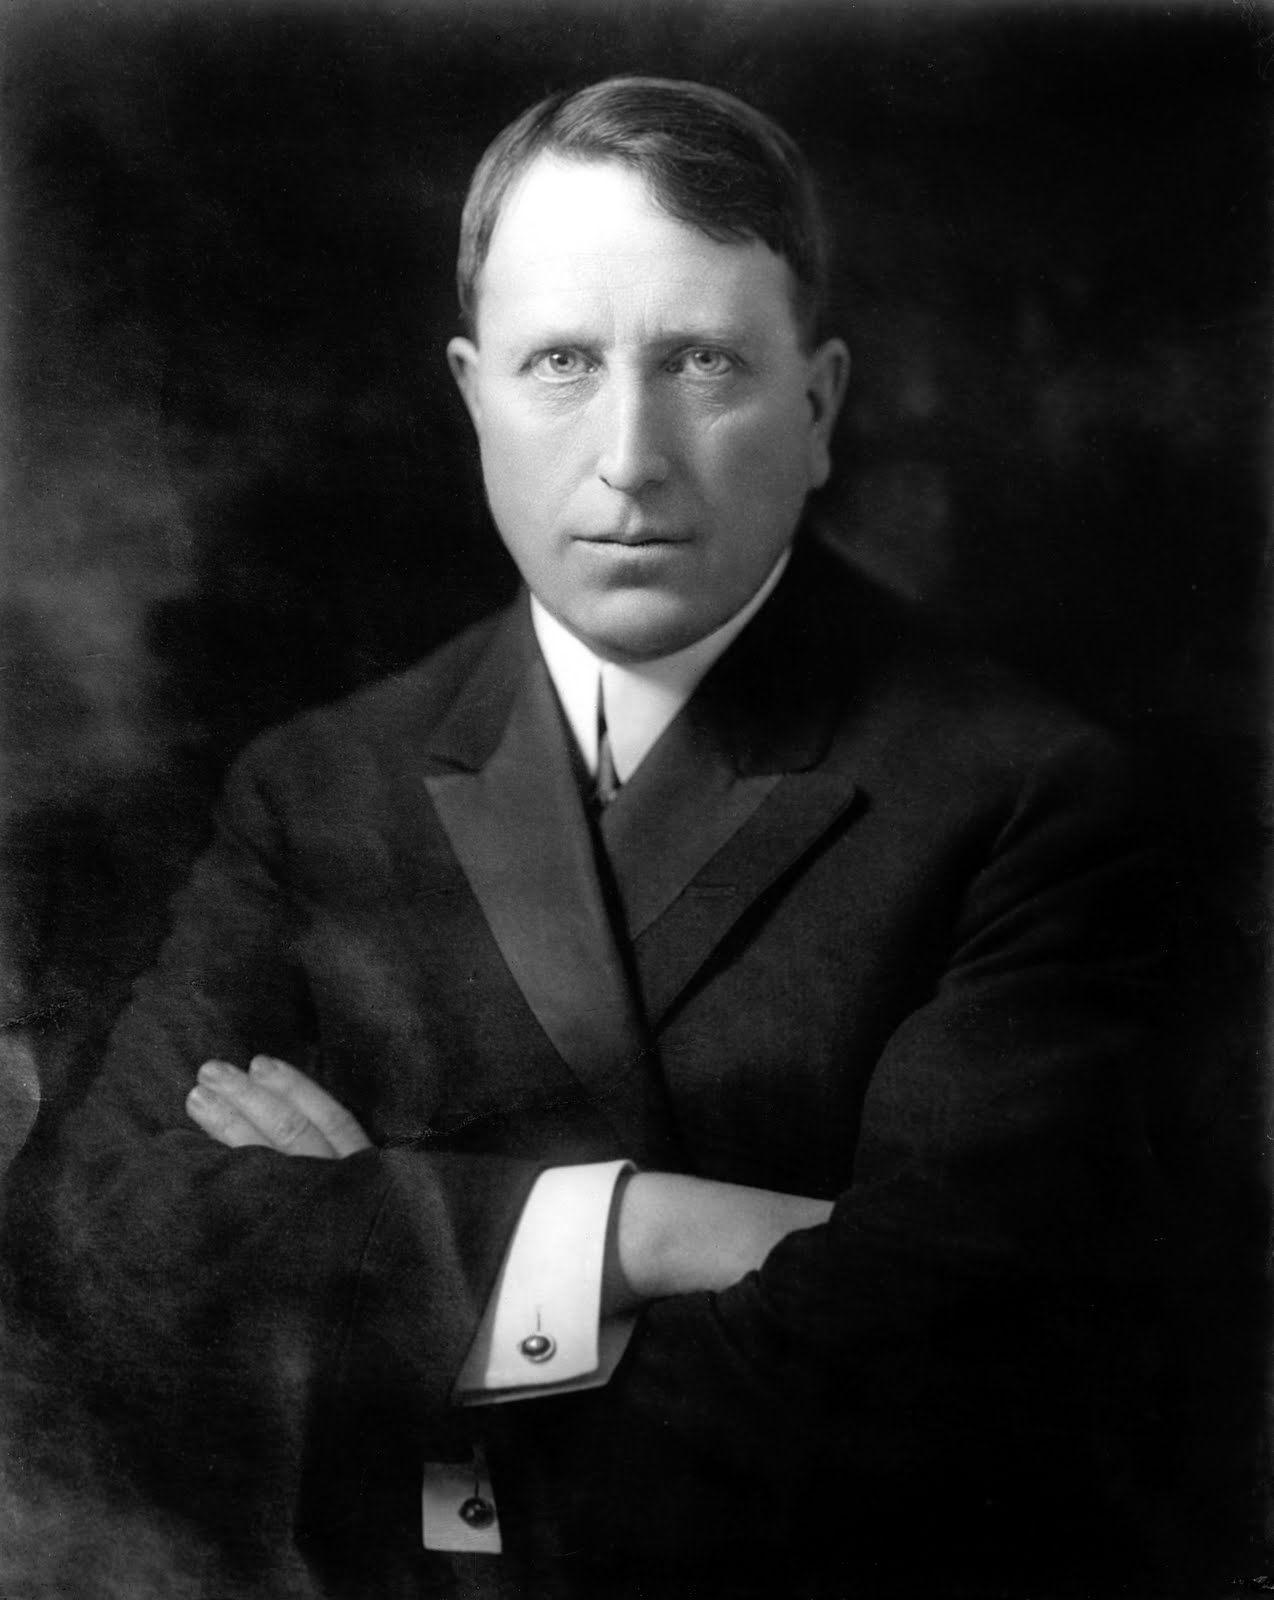 WilliamRandolphHearst